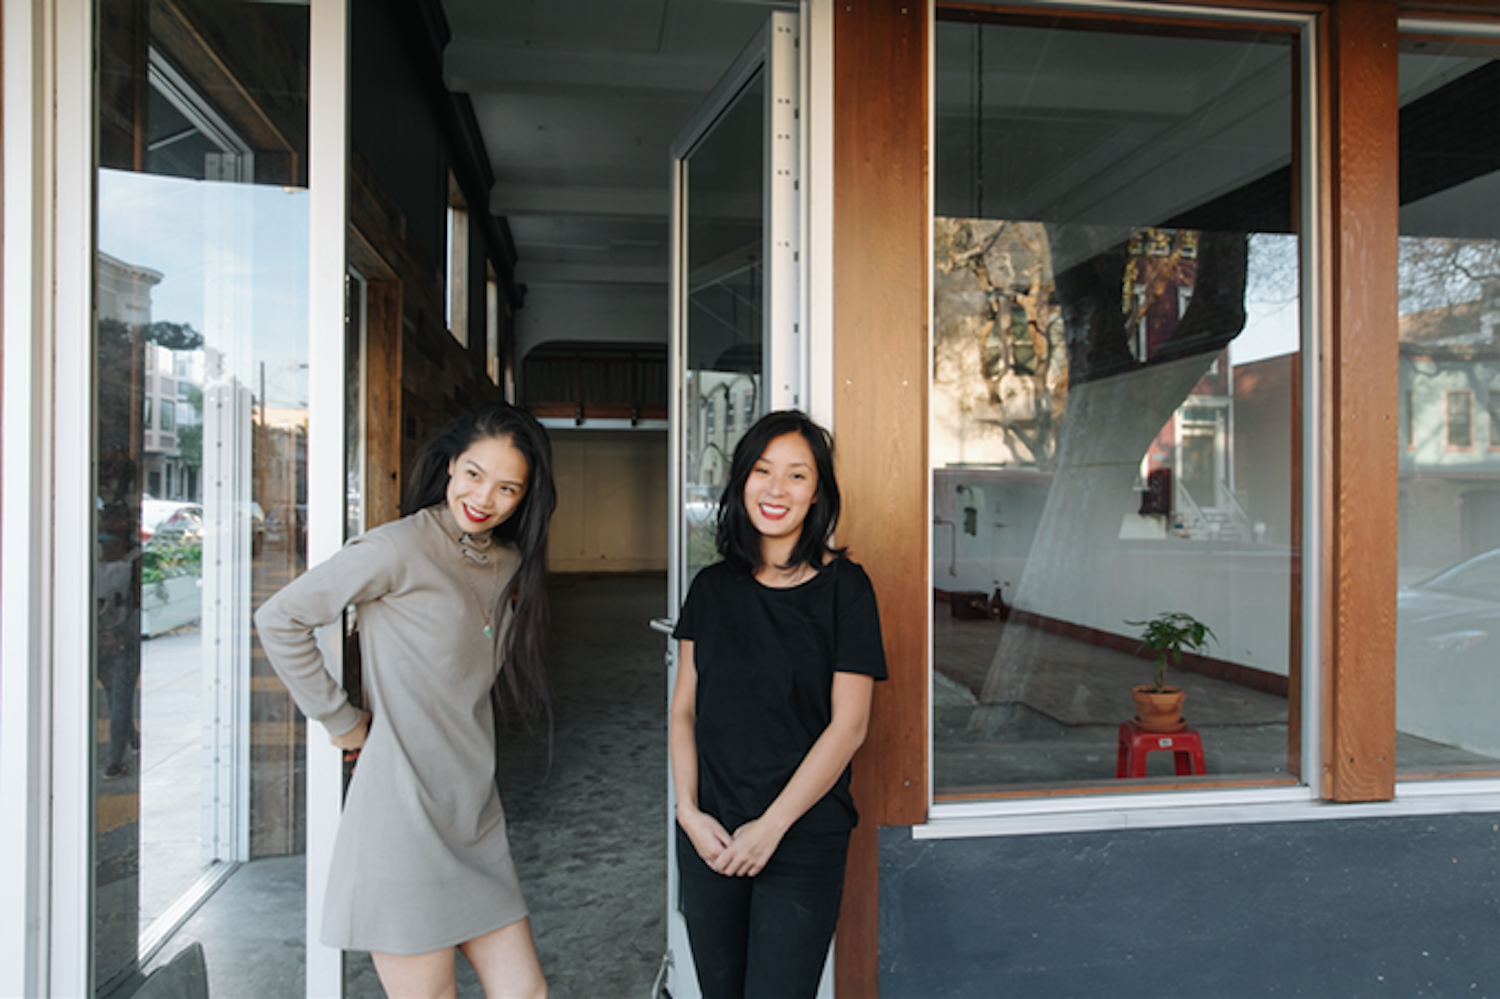 Katie Kwan and Valerie Luu in front of their future spot on Folsom.